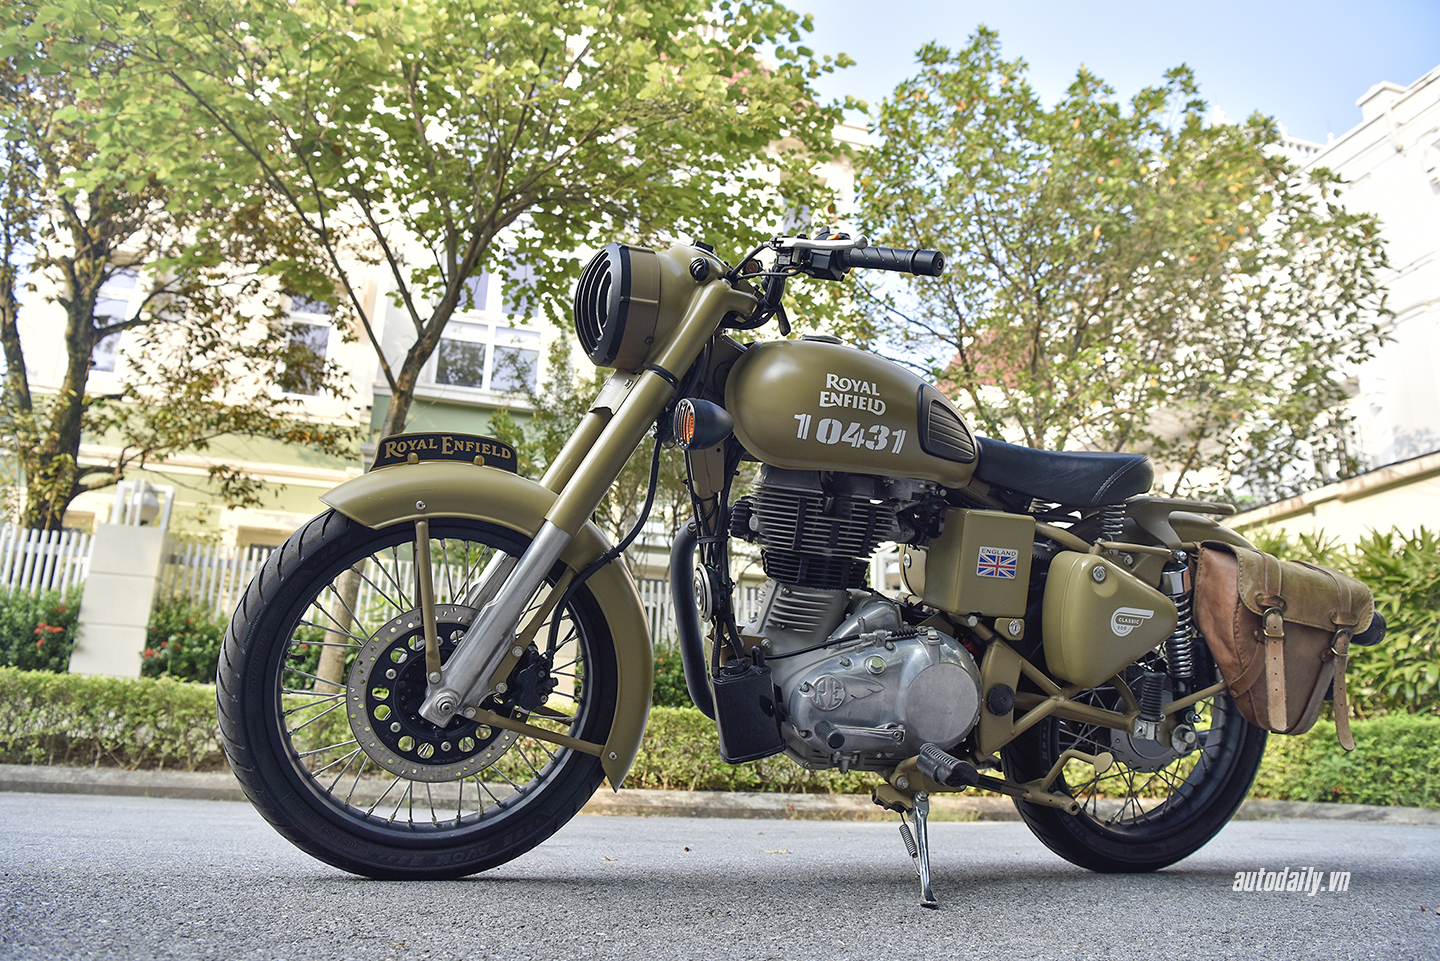 royal-enfield-dsc8046-copy.jpg